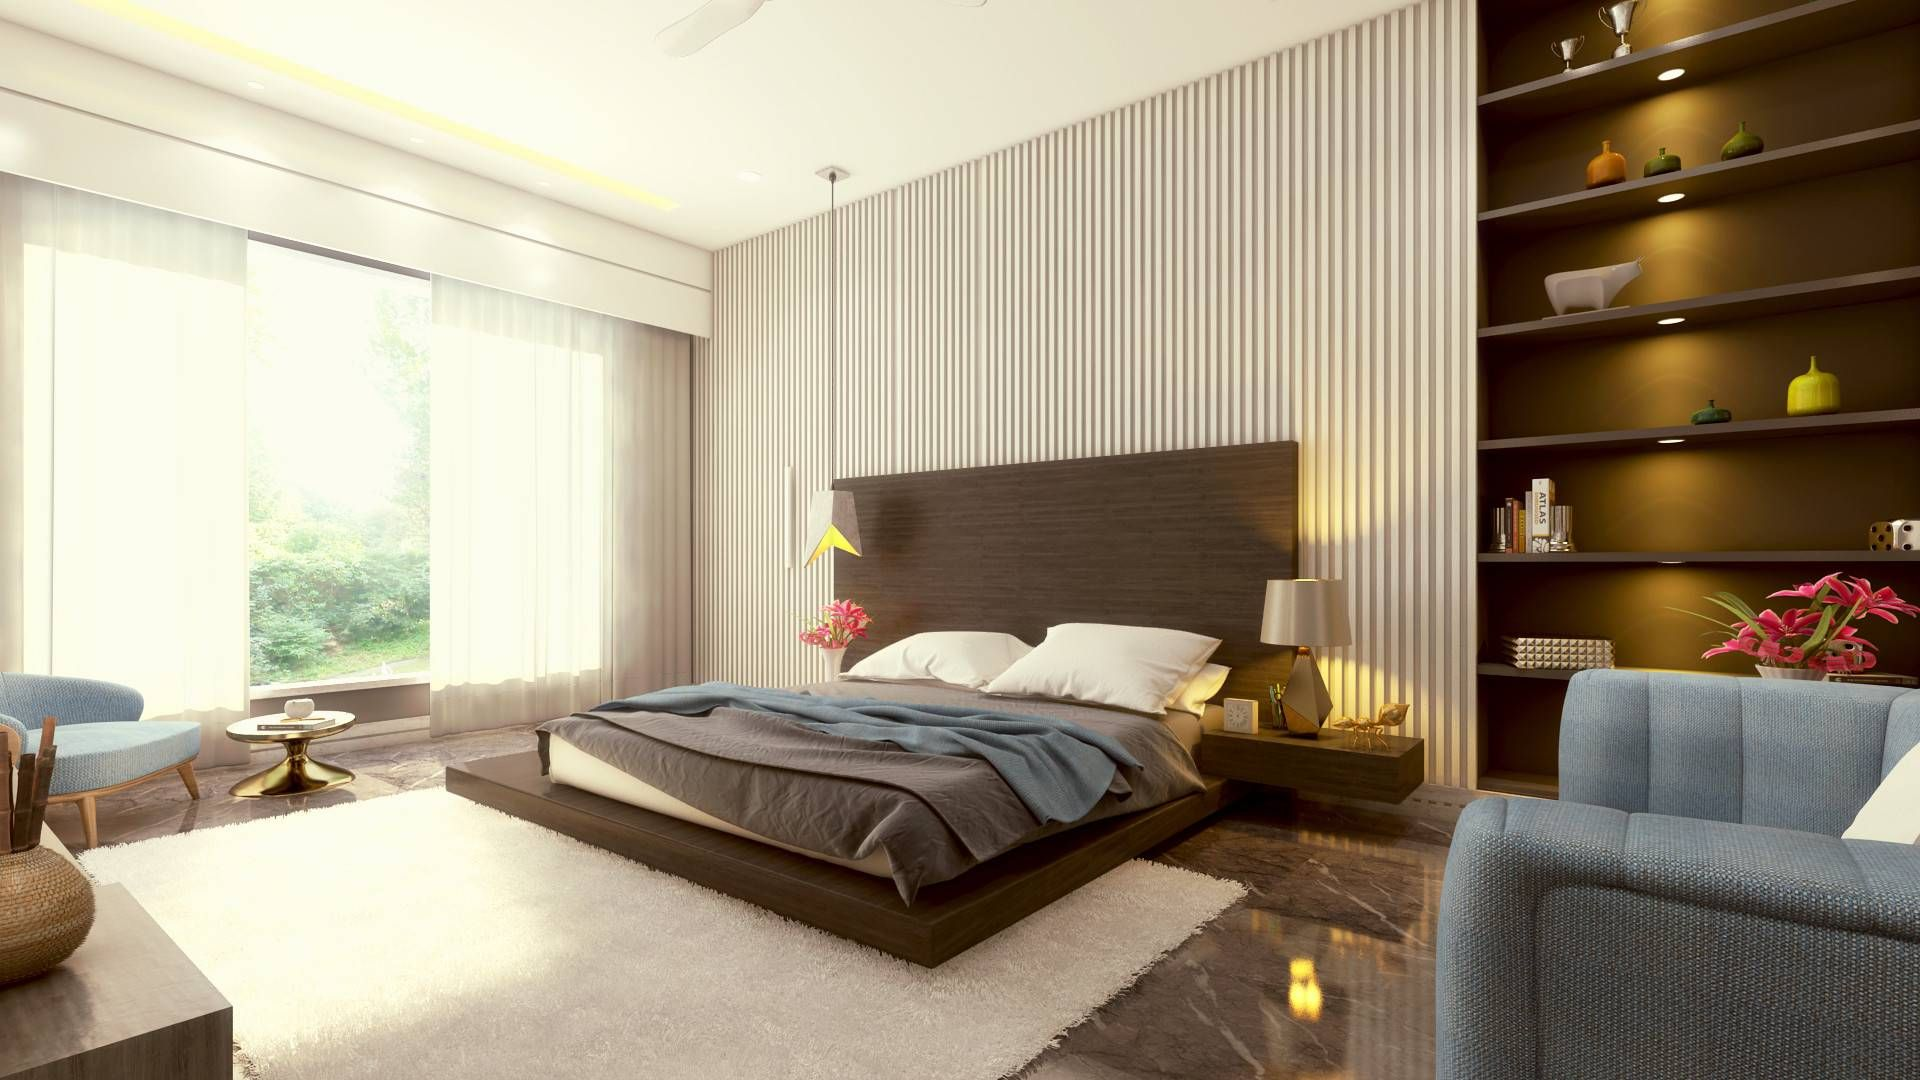 Master Bedroom 3d Bedroom Interior Design , #wood #house #interieur #architect #living #instagood #k #lifestyle #m #you #o #photography #bhfyp #modern #interiorinspo #d #bedroom #all #fashion #deco #like #inspo #archilovers #kitchendesign #homedecoration #interiordecorating #homestyle #interiorinspiration #myhome #realestate